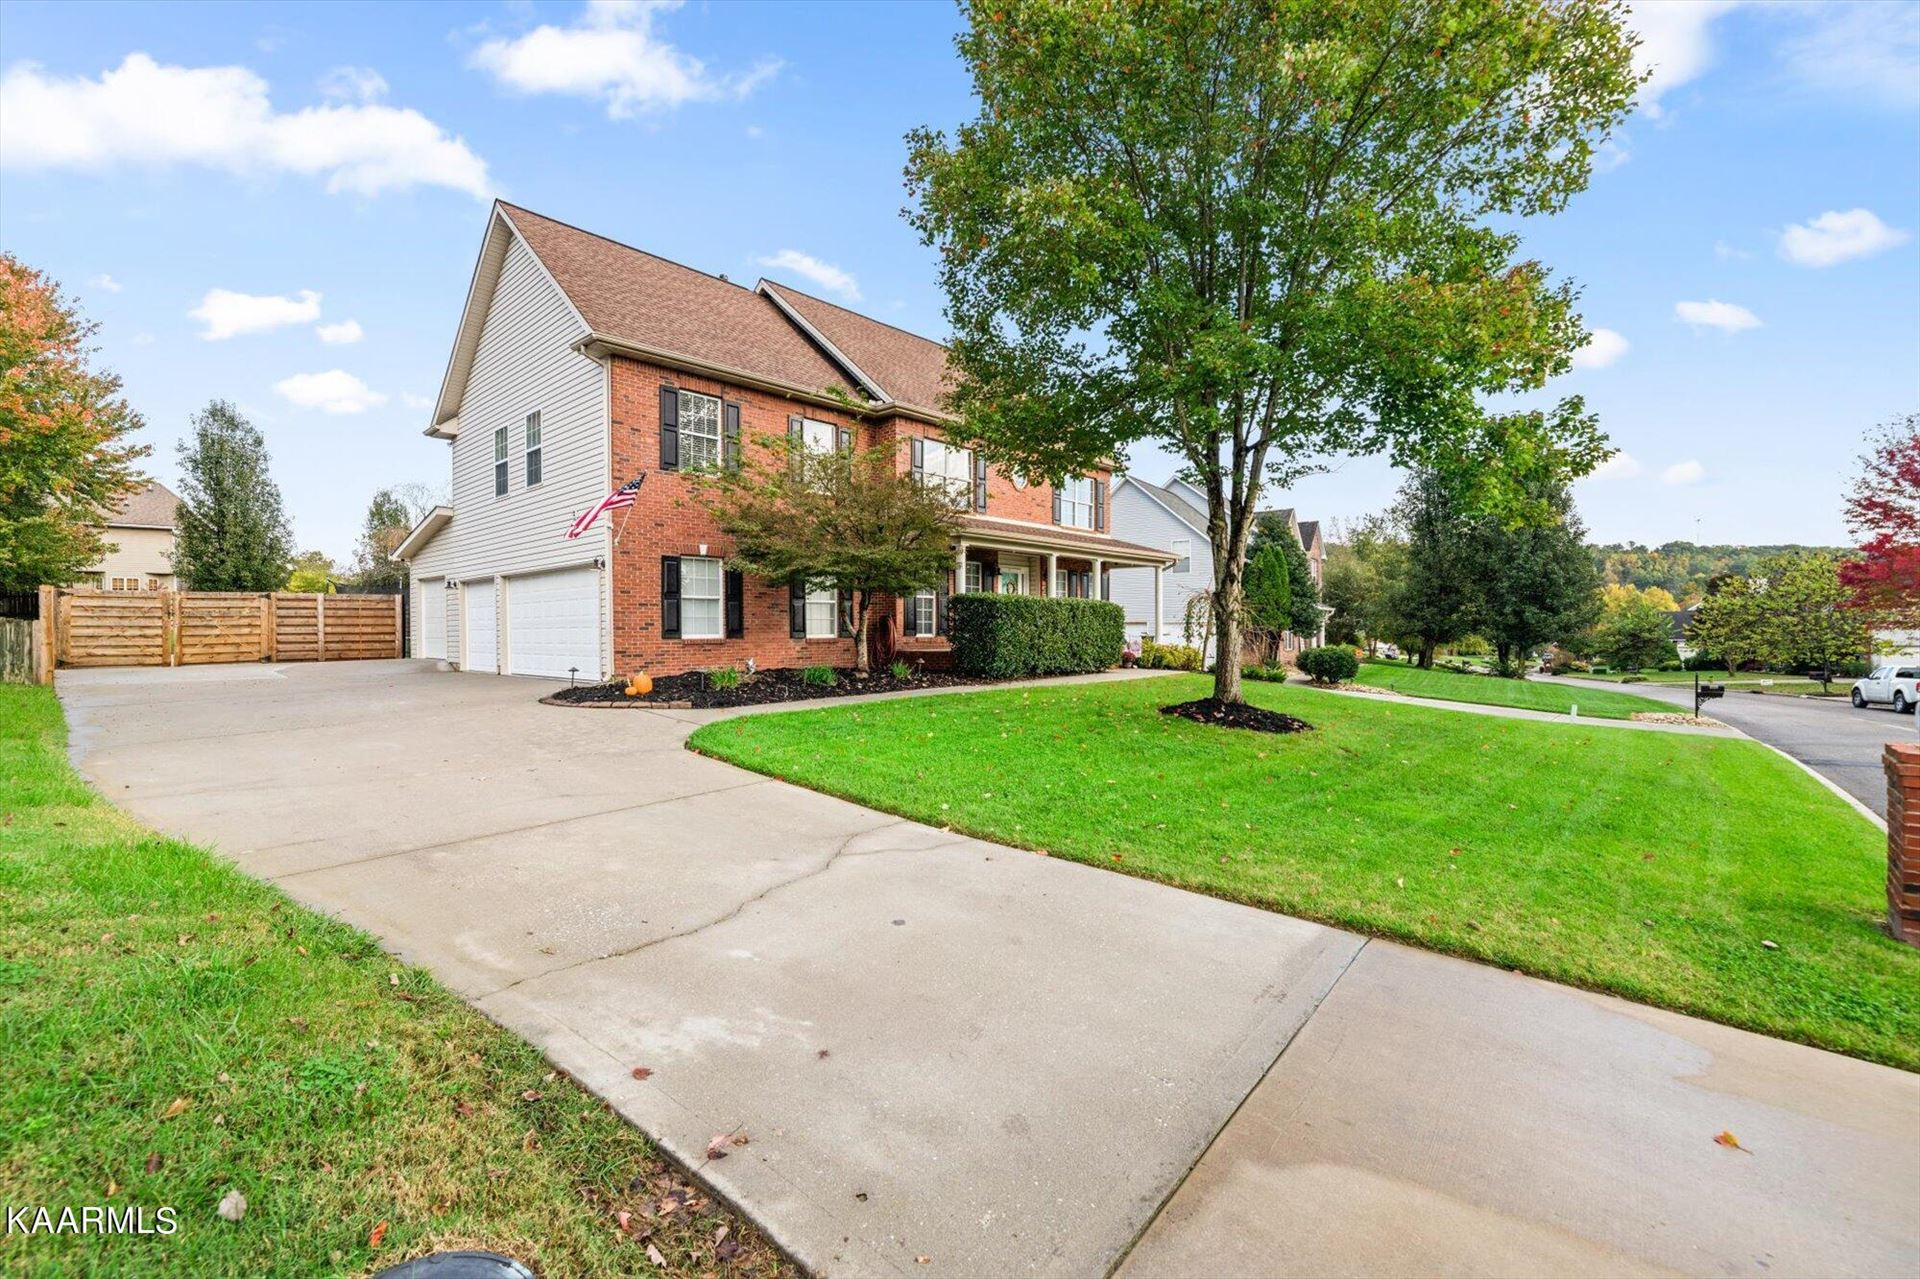 Photo of 6754 Fantasia Rd, Knoxville, TN 37918 (MLS # 1171699)